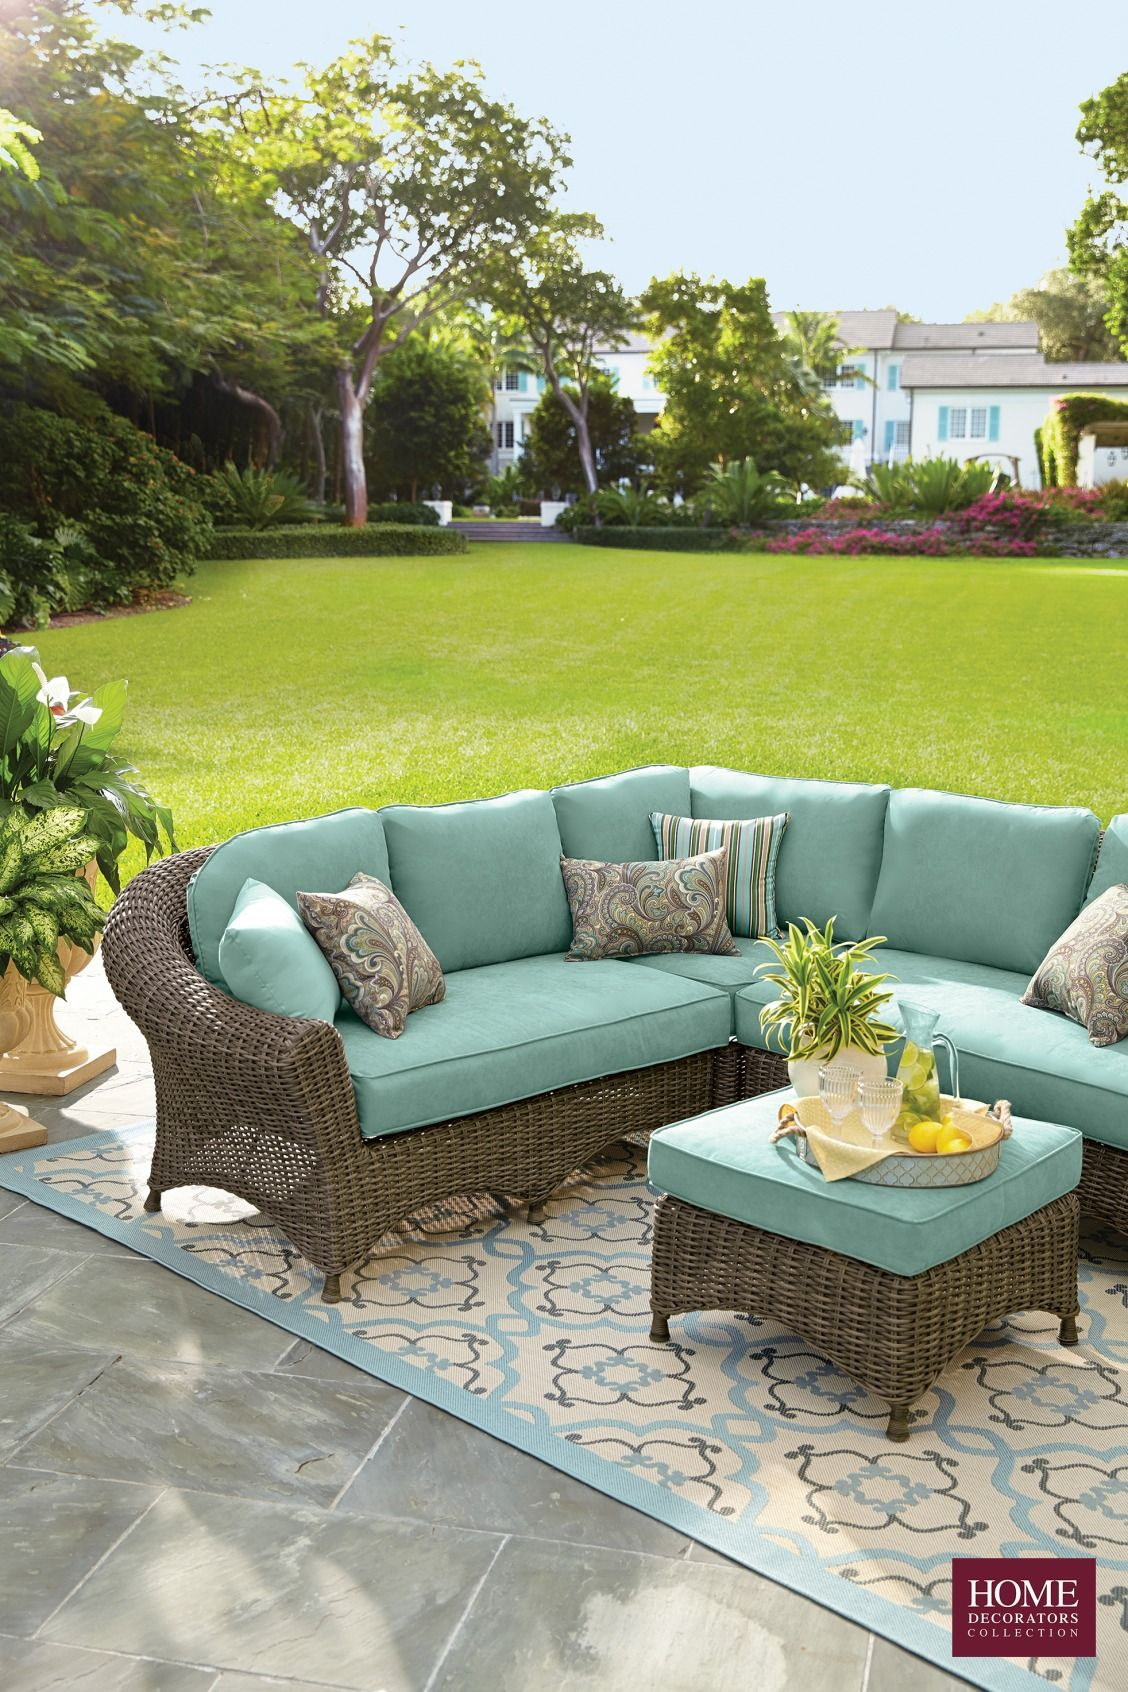 Bring On Outdoor Lounging Backyard Get Togethers And Naps By The